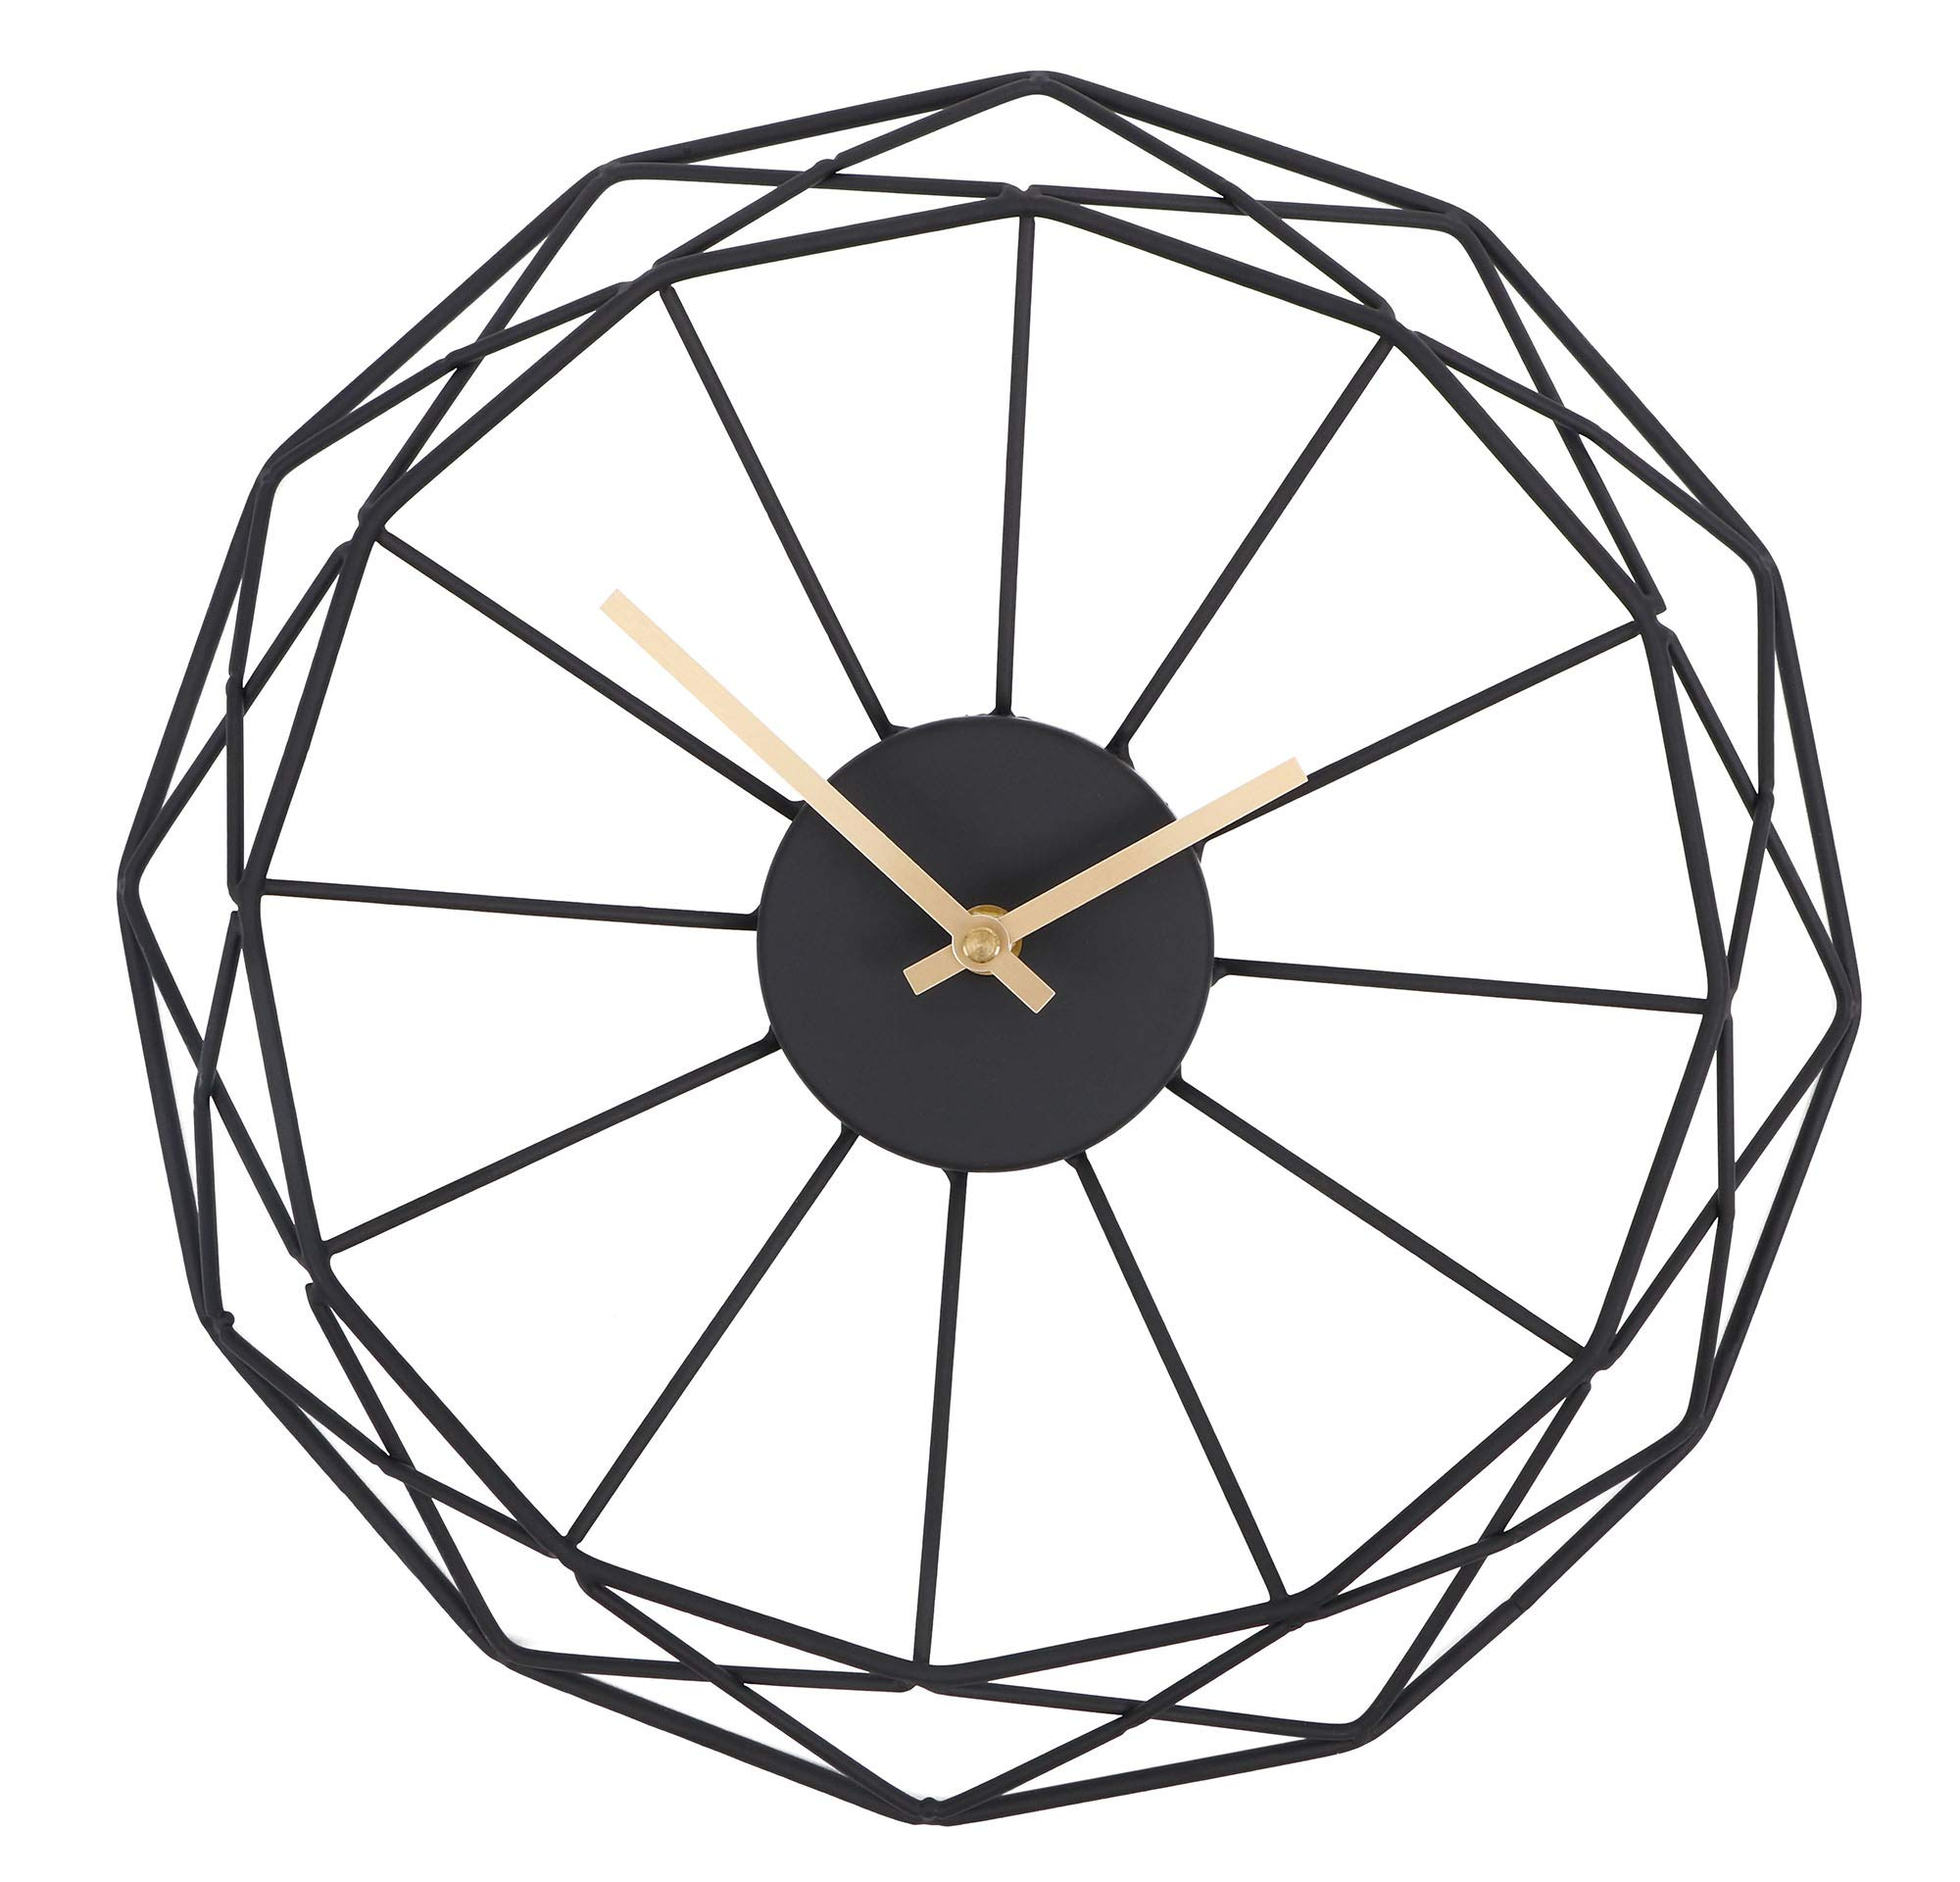 Moonsteps Modern Abstract Artsy 14 inches Black Iron Frame Gold Minute Hour Hand Wall Clock - Durable, strong iron plated black frame Unique & stylish abstract artsy flair clock design Gold plated hour & minute hand for added elegance - wall-clocks, living-room-decor, living-room - 71C9bP8a6UL -